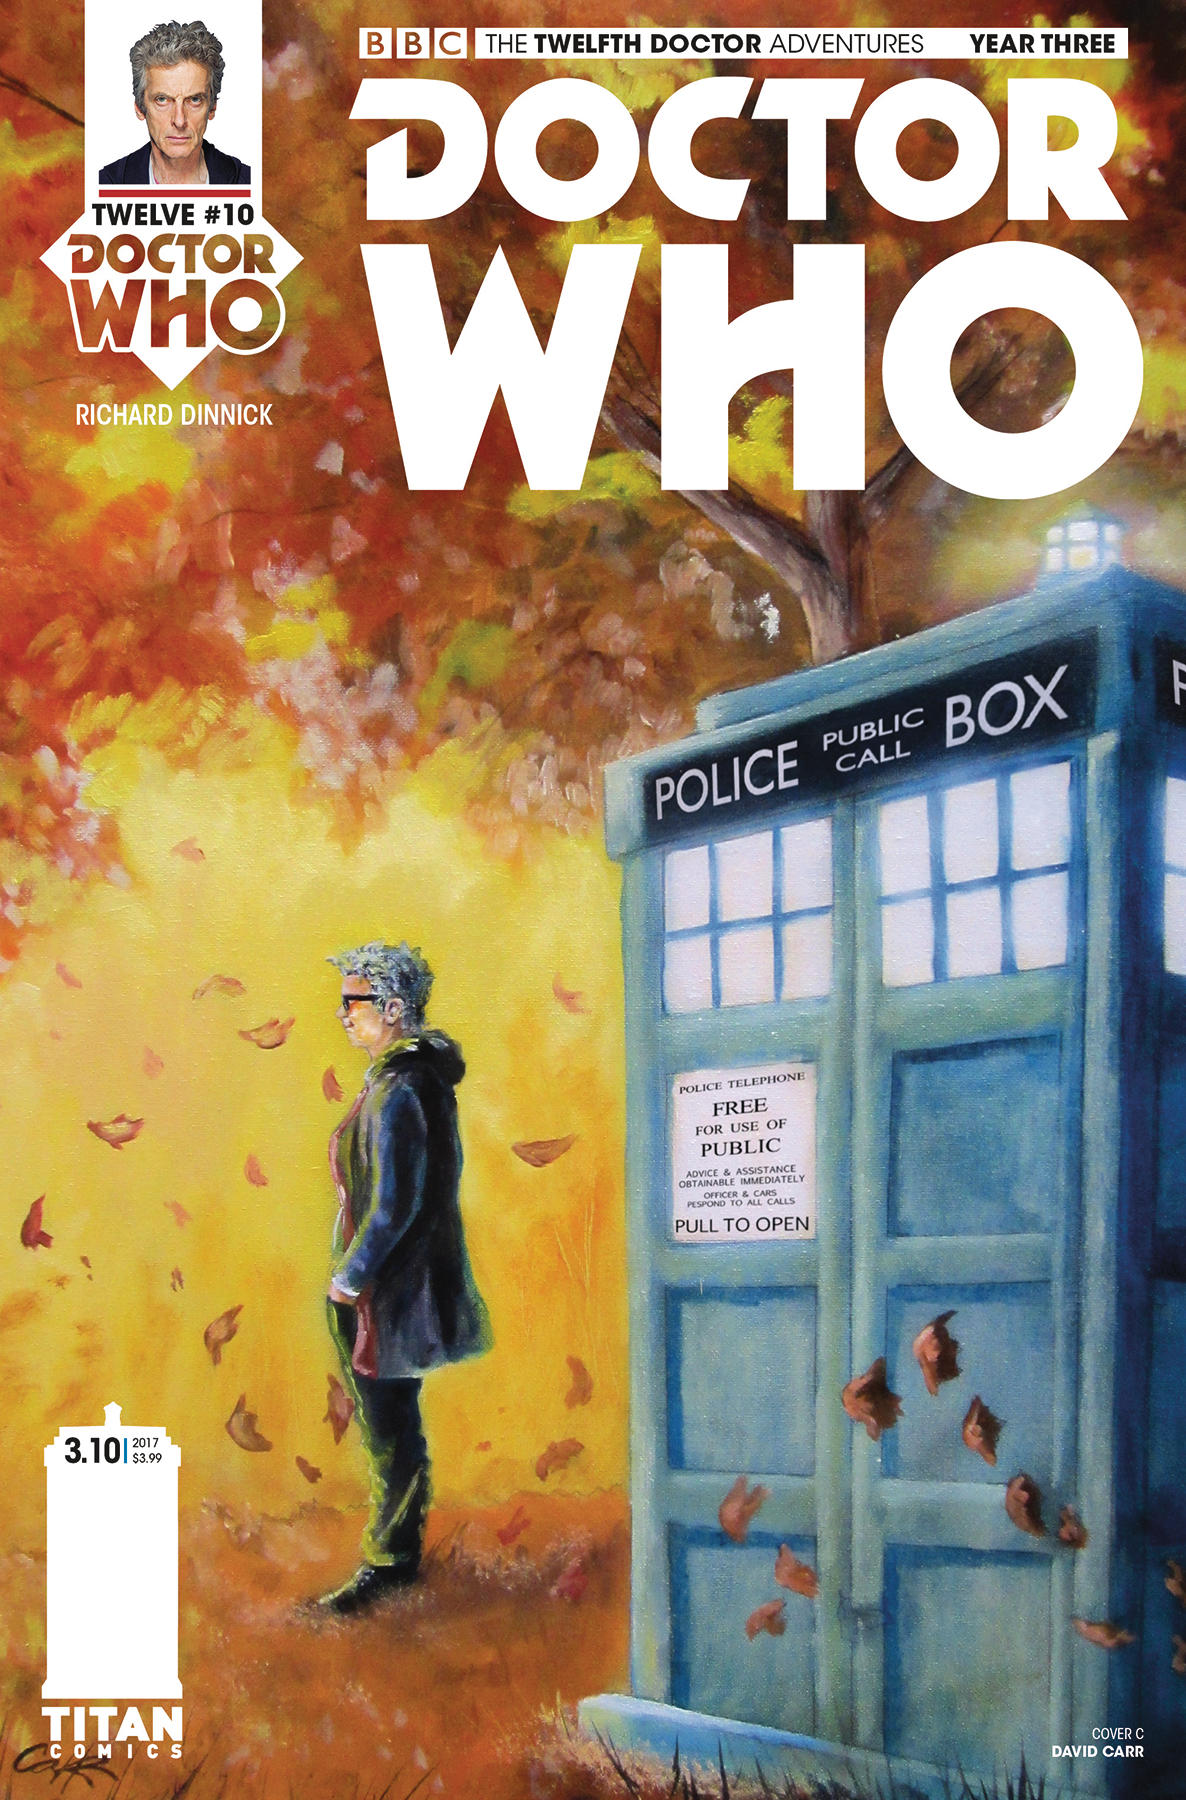 DOCTOR WHO 12TH YEAR THREE #10 CVR C CARR